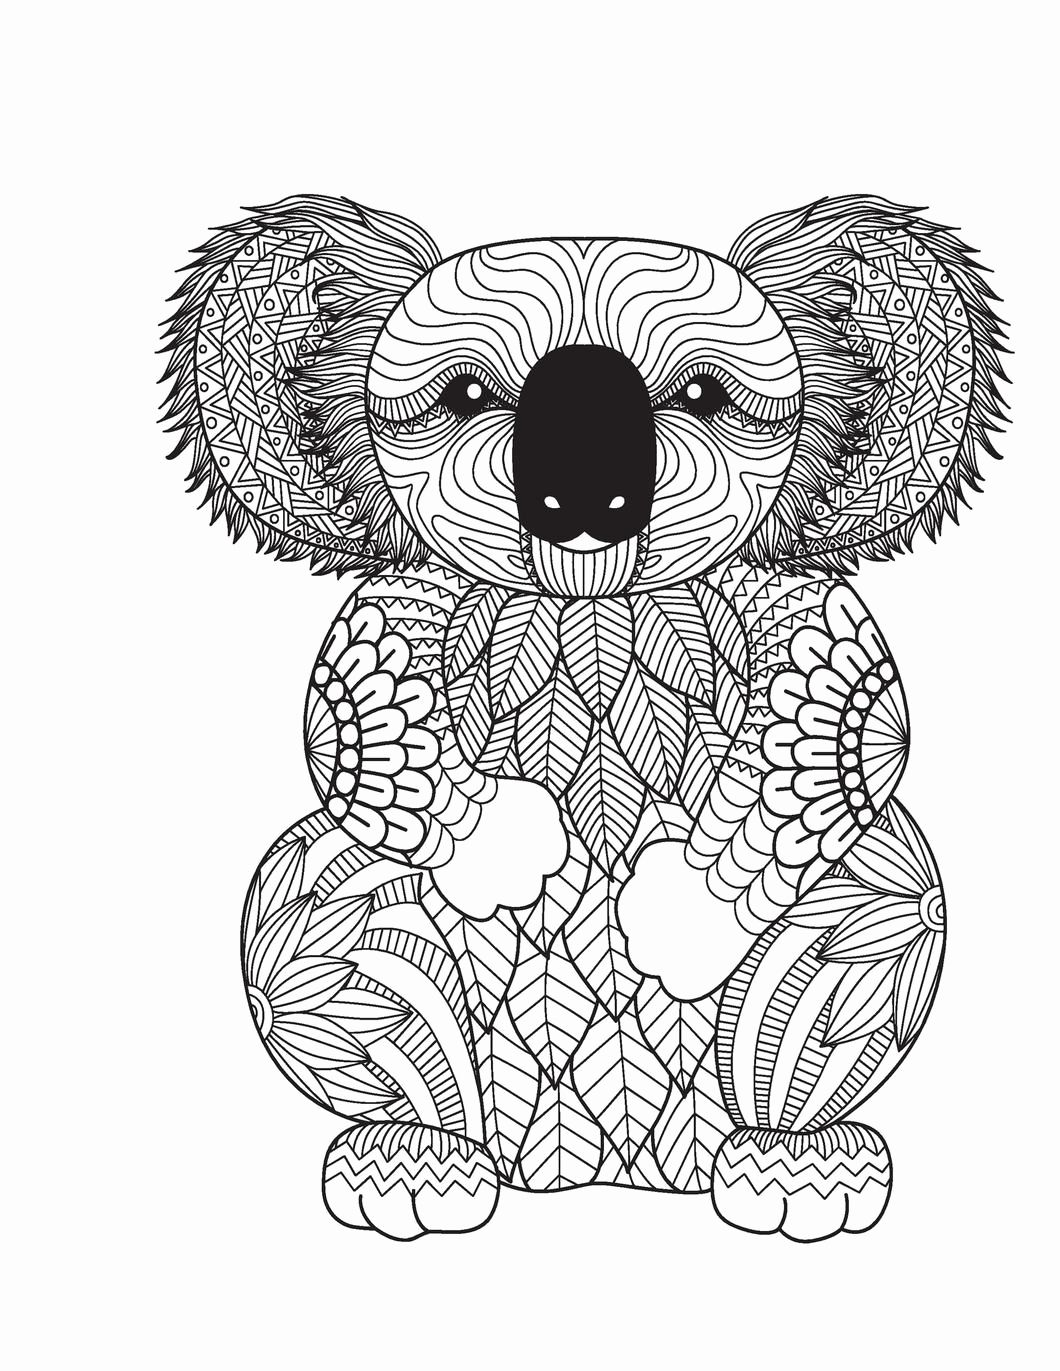 Animal Coloring Book Pages Unique Amazing Animals For Adults Who Color Live Your Life In In 2020 Bear Coloring Pages Animal Coloring Books Animal Coloring Pages